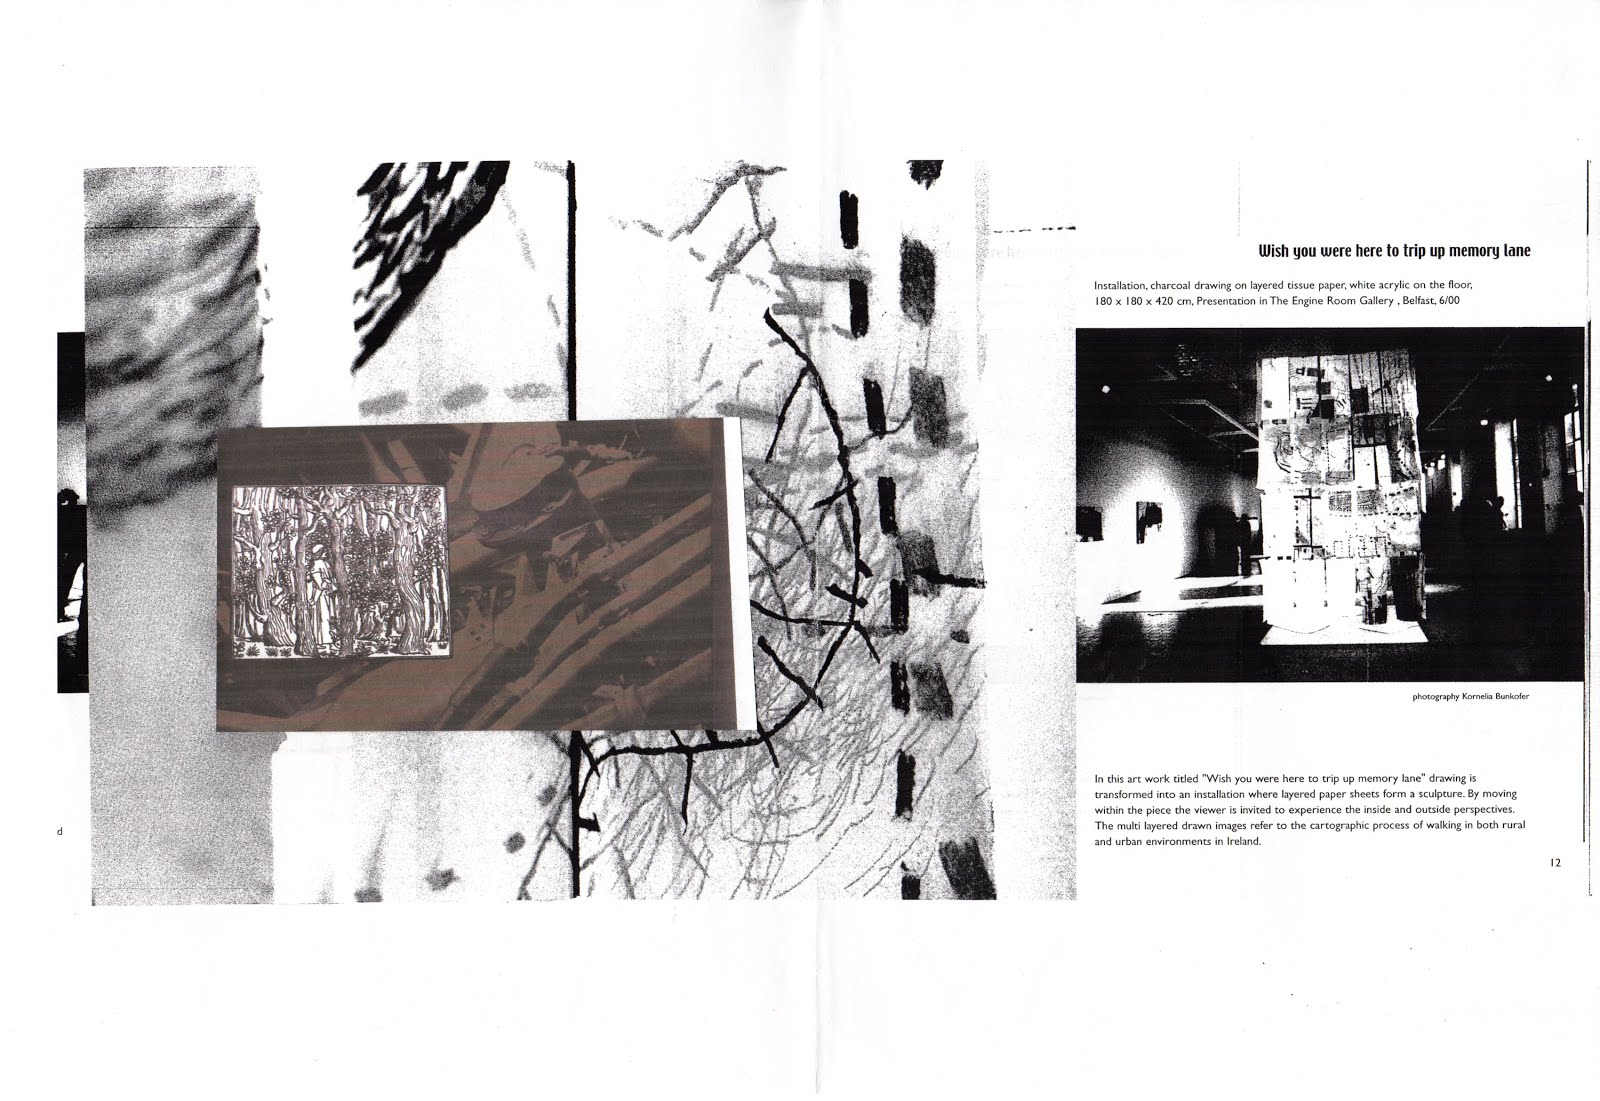 architecture dark epiphany erotic forest polyphilo revisited